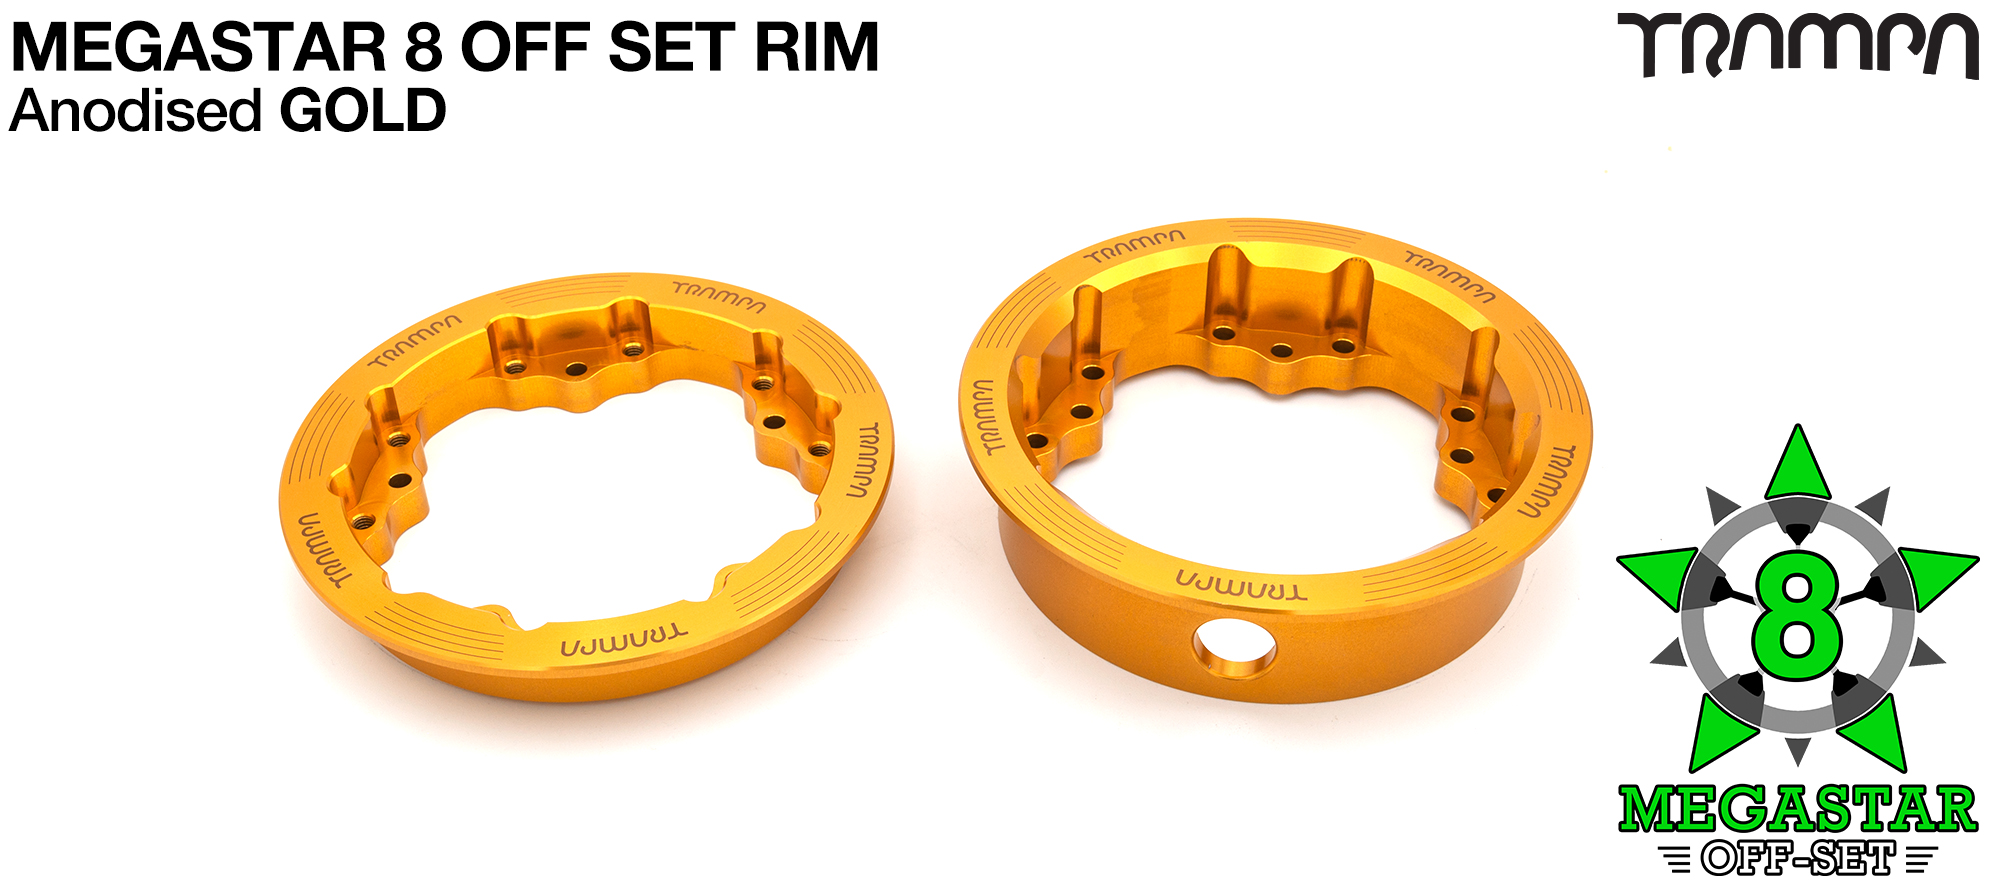 CENTER-SET 8 inch MEGASTAR Rims - GOLD